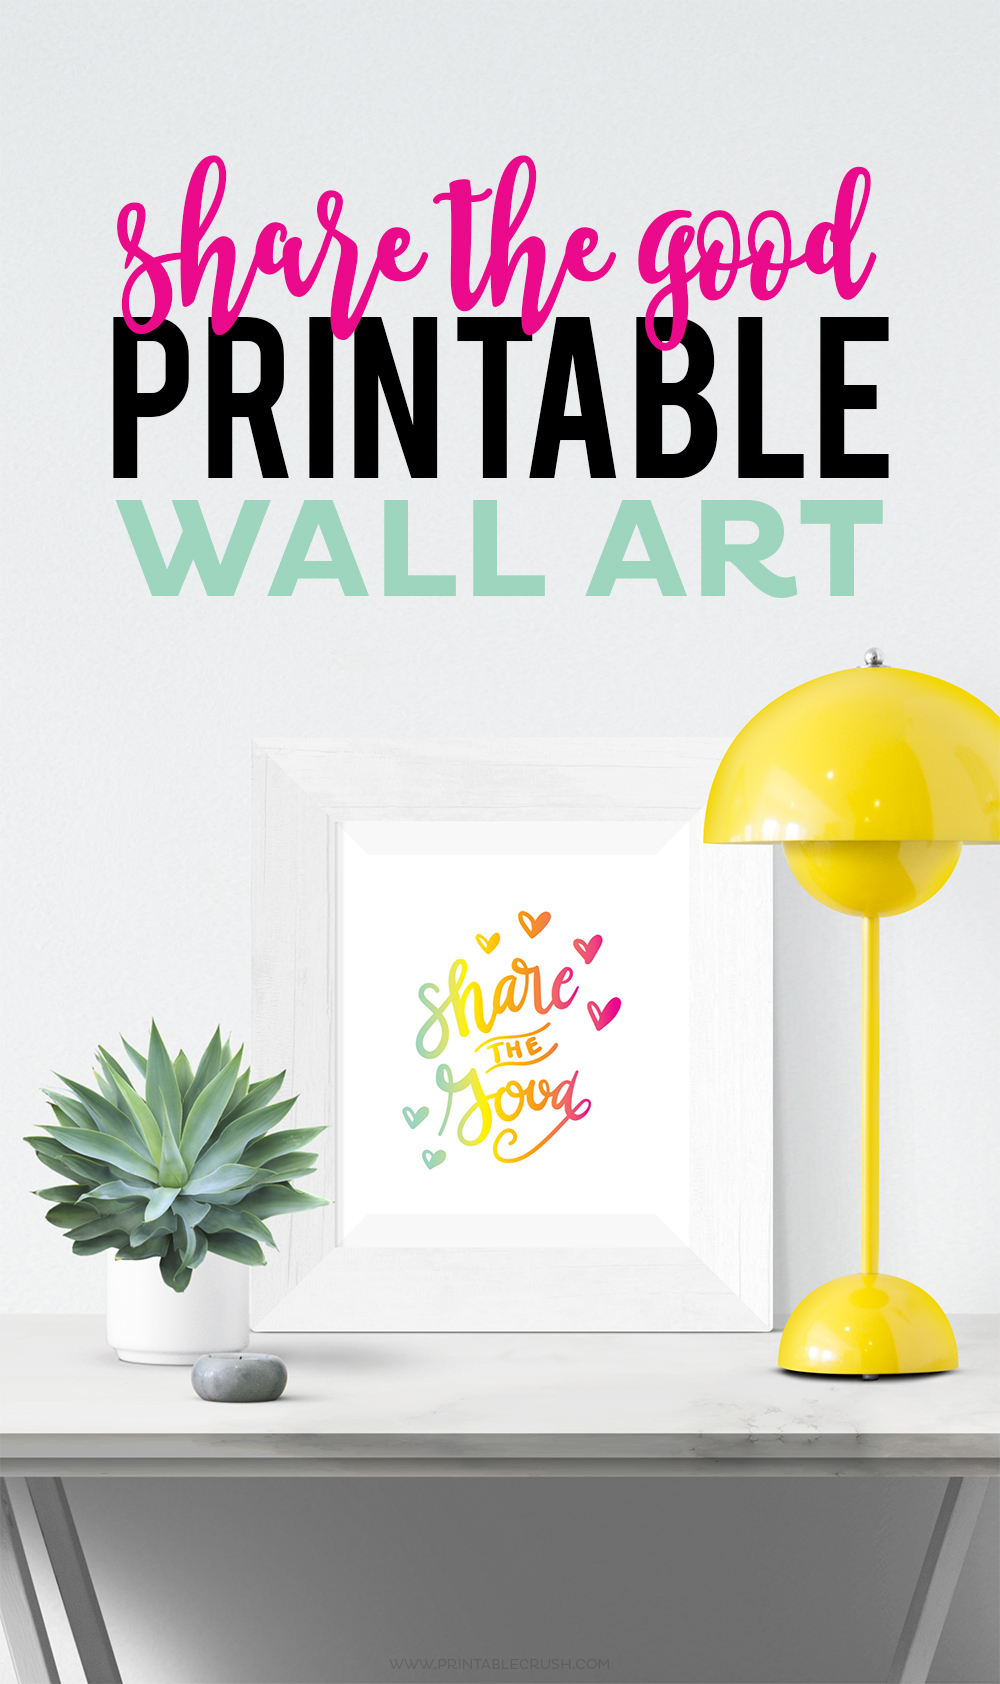 photograph about Printable Word Art named Cost-free Proportion the Fantastic Printable Phrase Artwork - Printable Crush